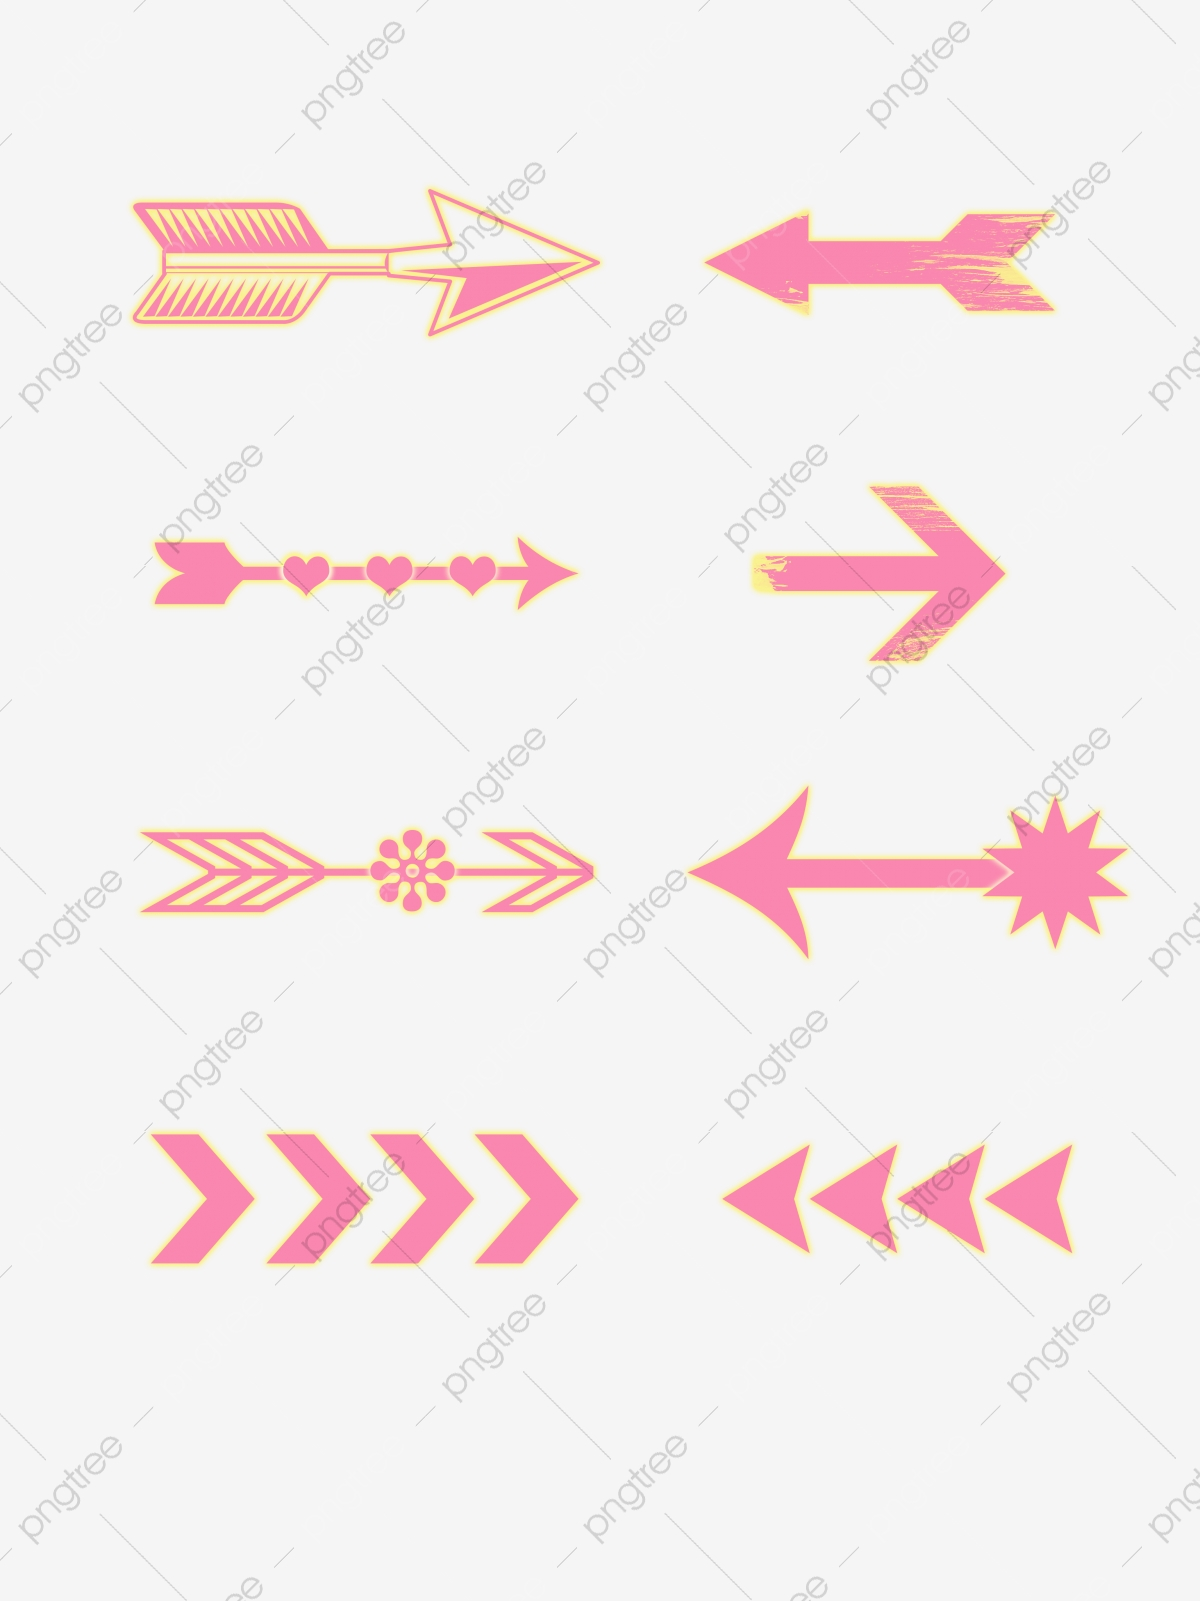 Girly Arrow : girly, arrow, Simple, Arrow, Decorative, Element, Design,, Simple,, Lovely,, Transparent, Clipart, Image, Download